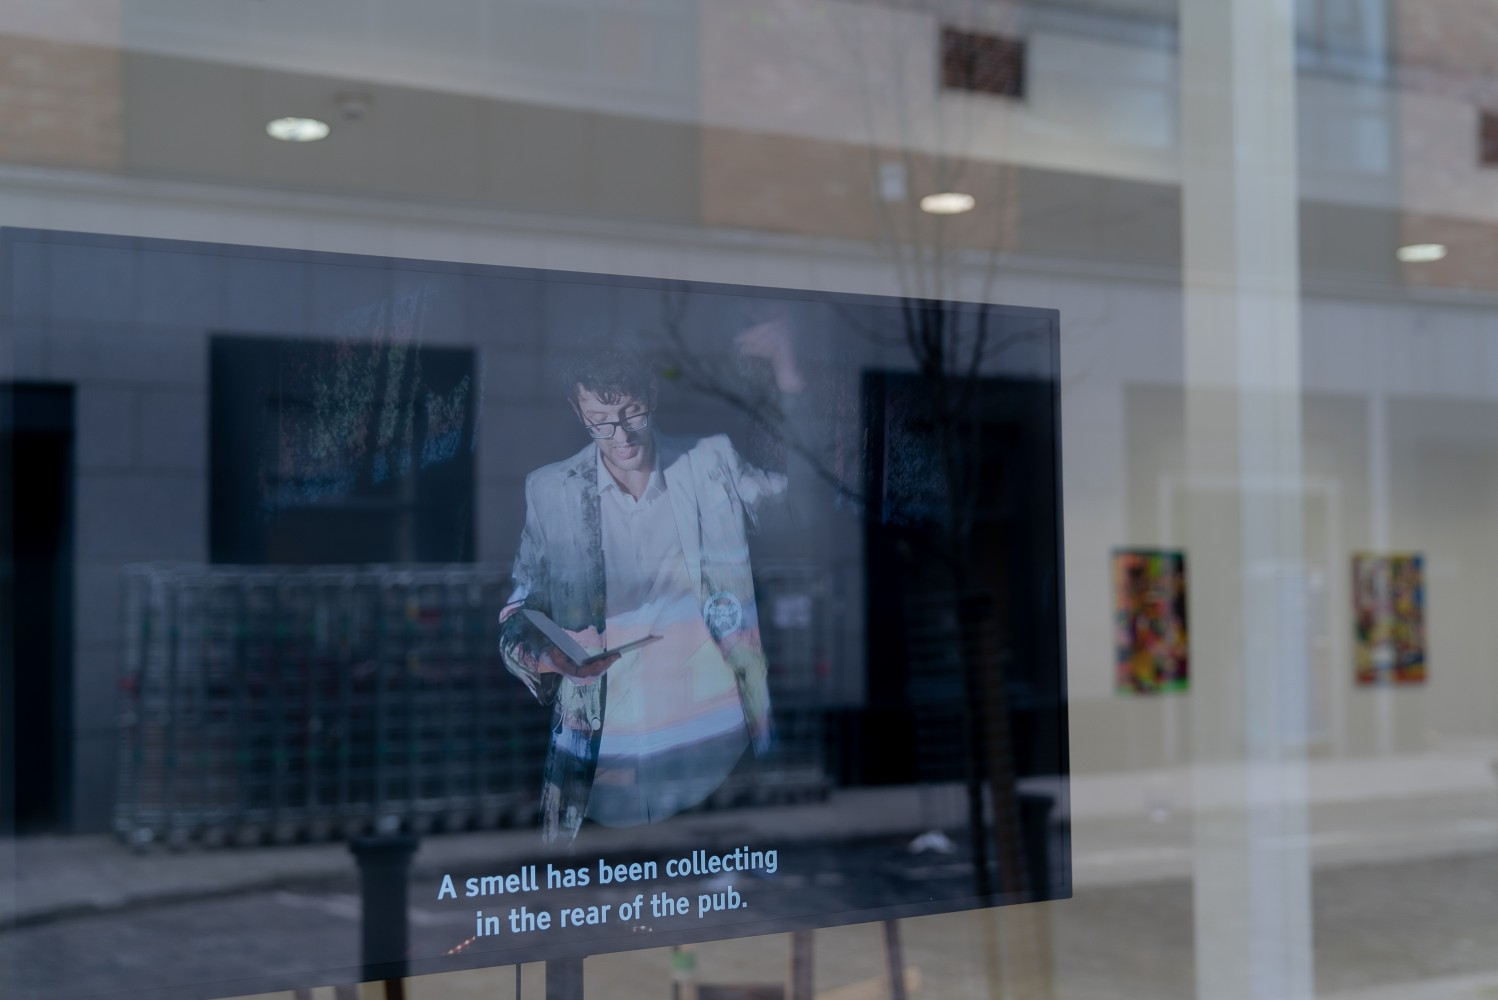 A large flat screen TV viewed through the glass window of a gallery takes up most of the frame. The TV shows a man with dark hair and glasses reading from a book, the background behind him is black. At the bottom of the screen there is a caption that reads 'A Smell has been collecting in the rear of the pub'. Behind the TV we can see the ceiling floor and wall of the gallery. The street is reflected in the glass.